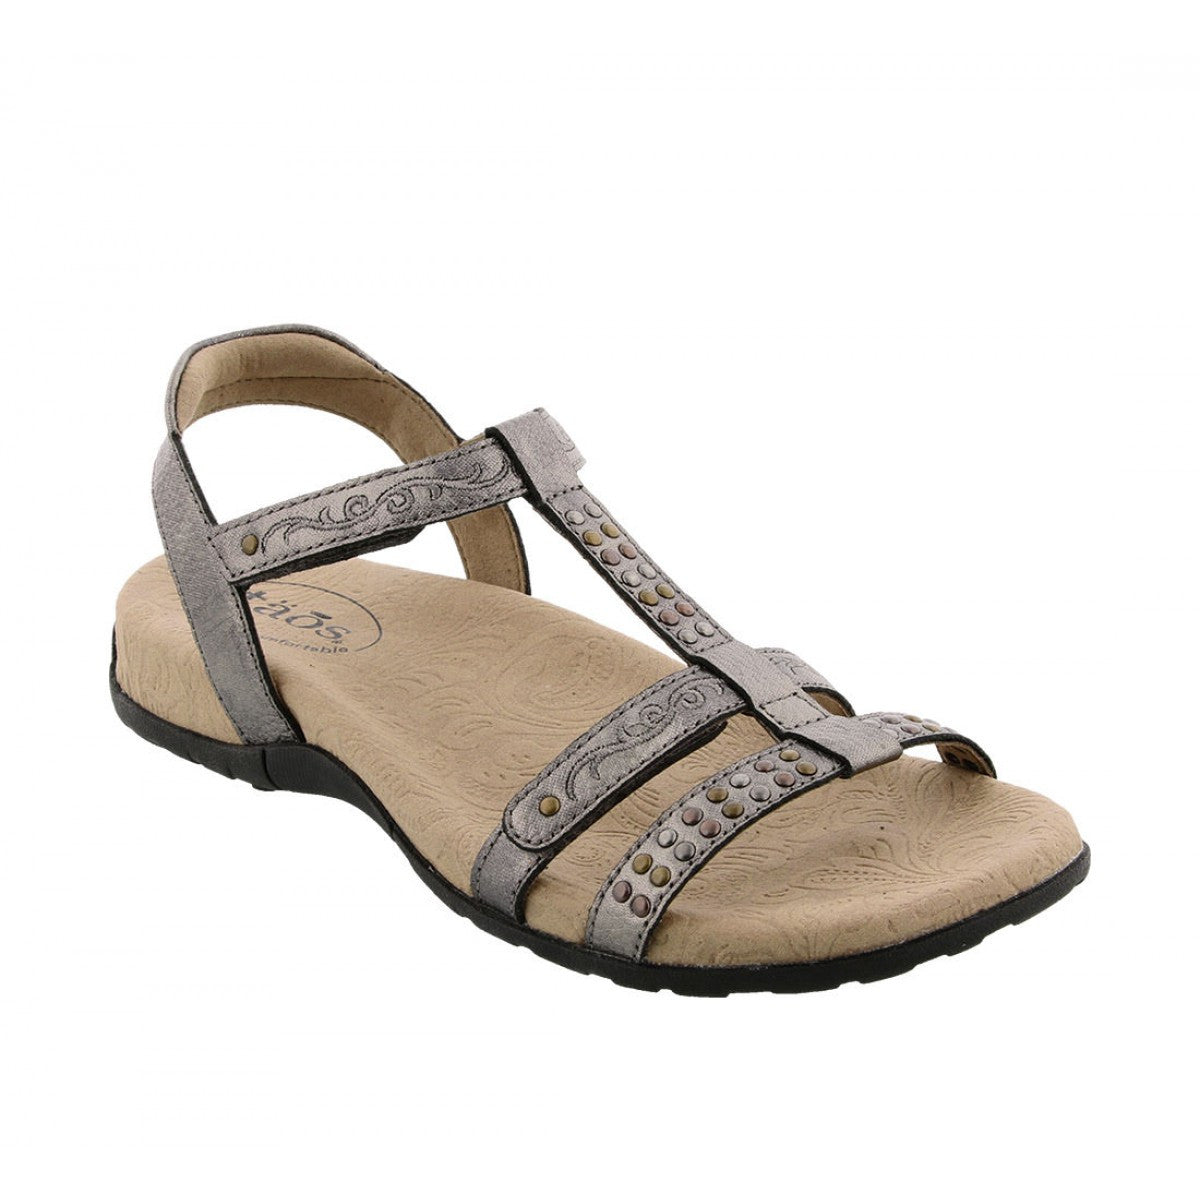 Birk Arizona